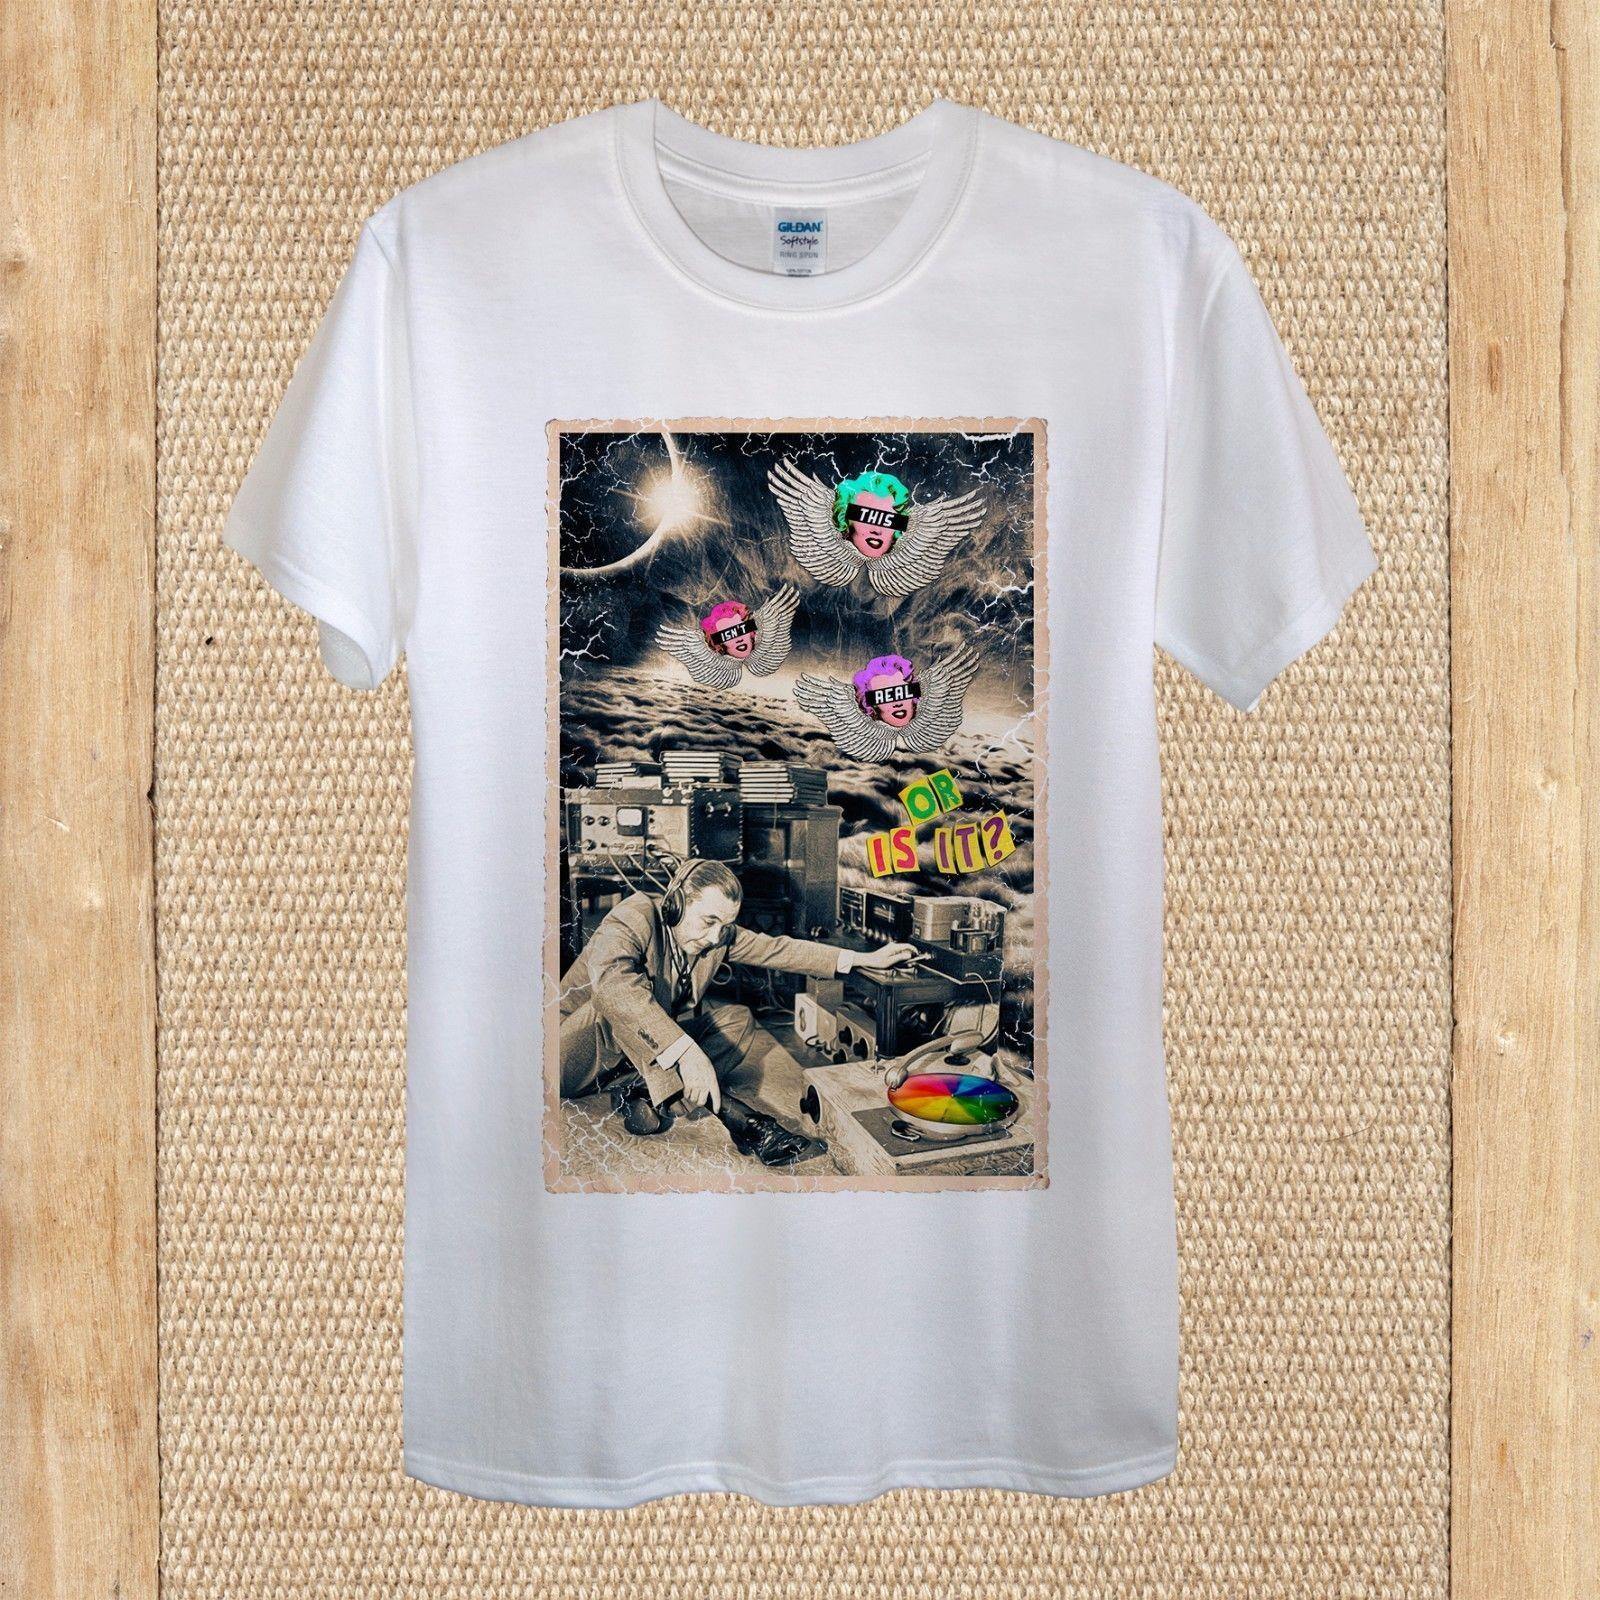 This Istnt Real Art Creative T Shirt Design High Quality Unisex